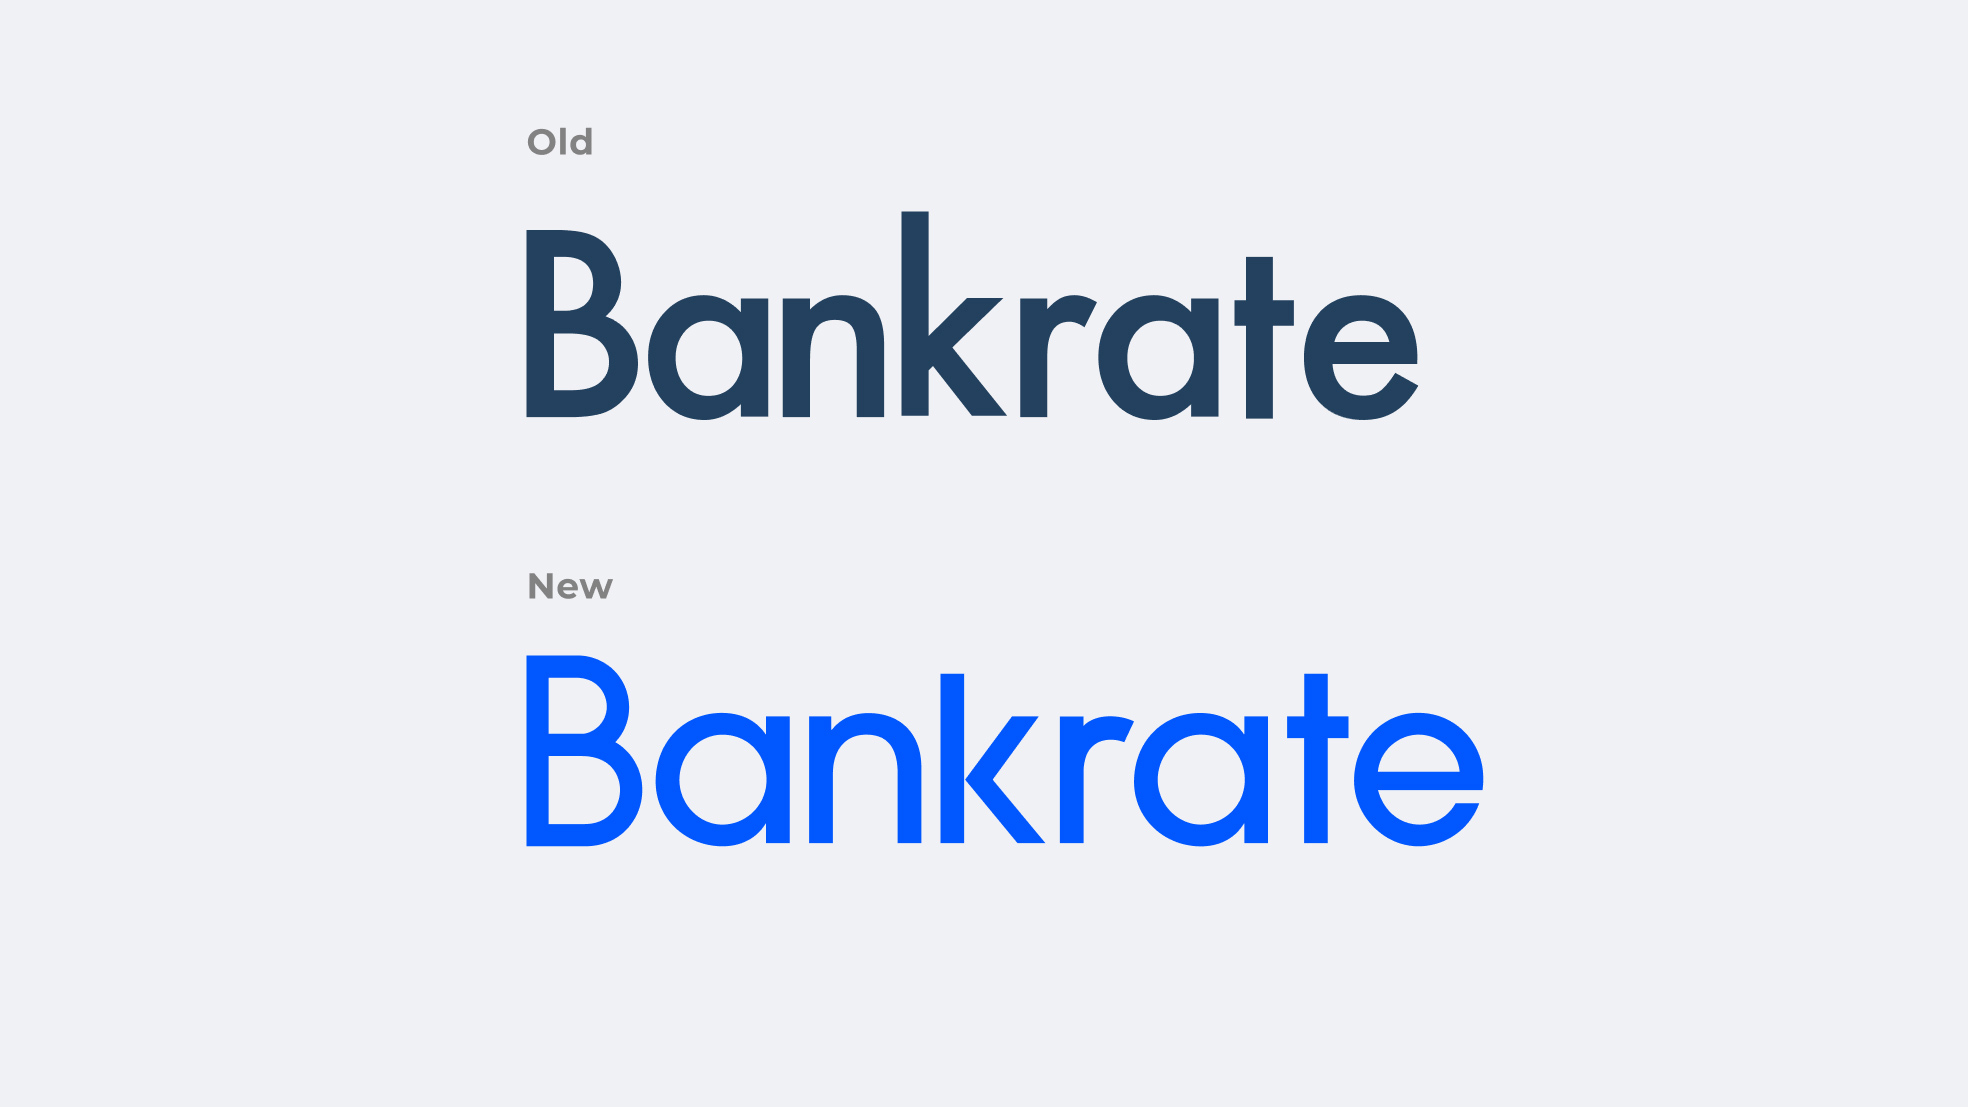 Bankrate's old and new logo designed by me.